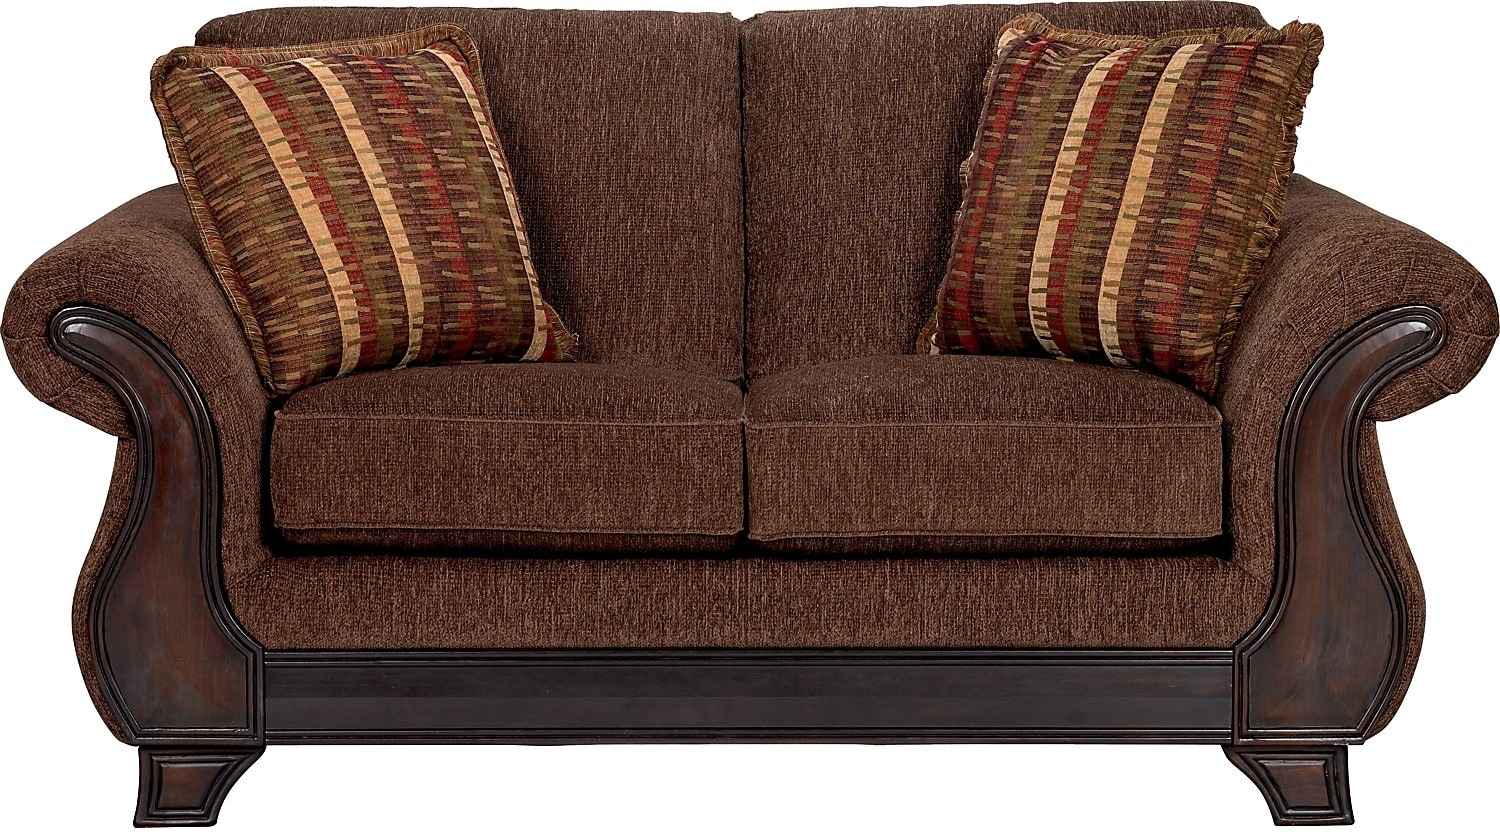 Ivan chenille queen size sofa bed brown the brick Chenille sofa and loveseat